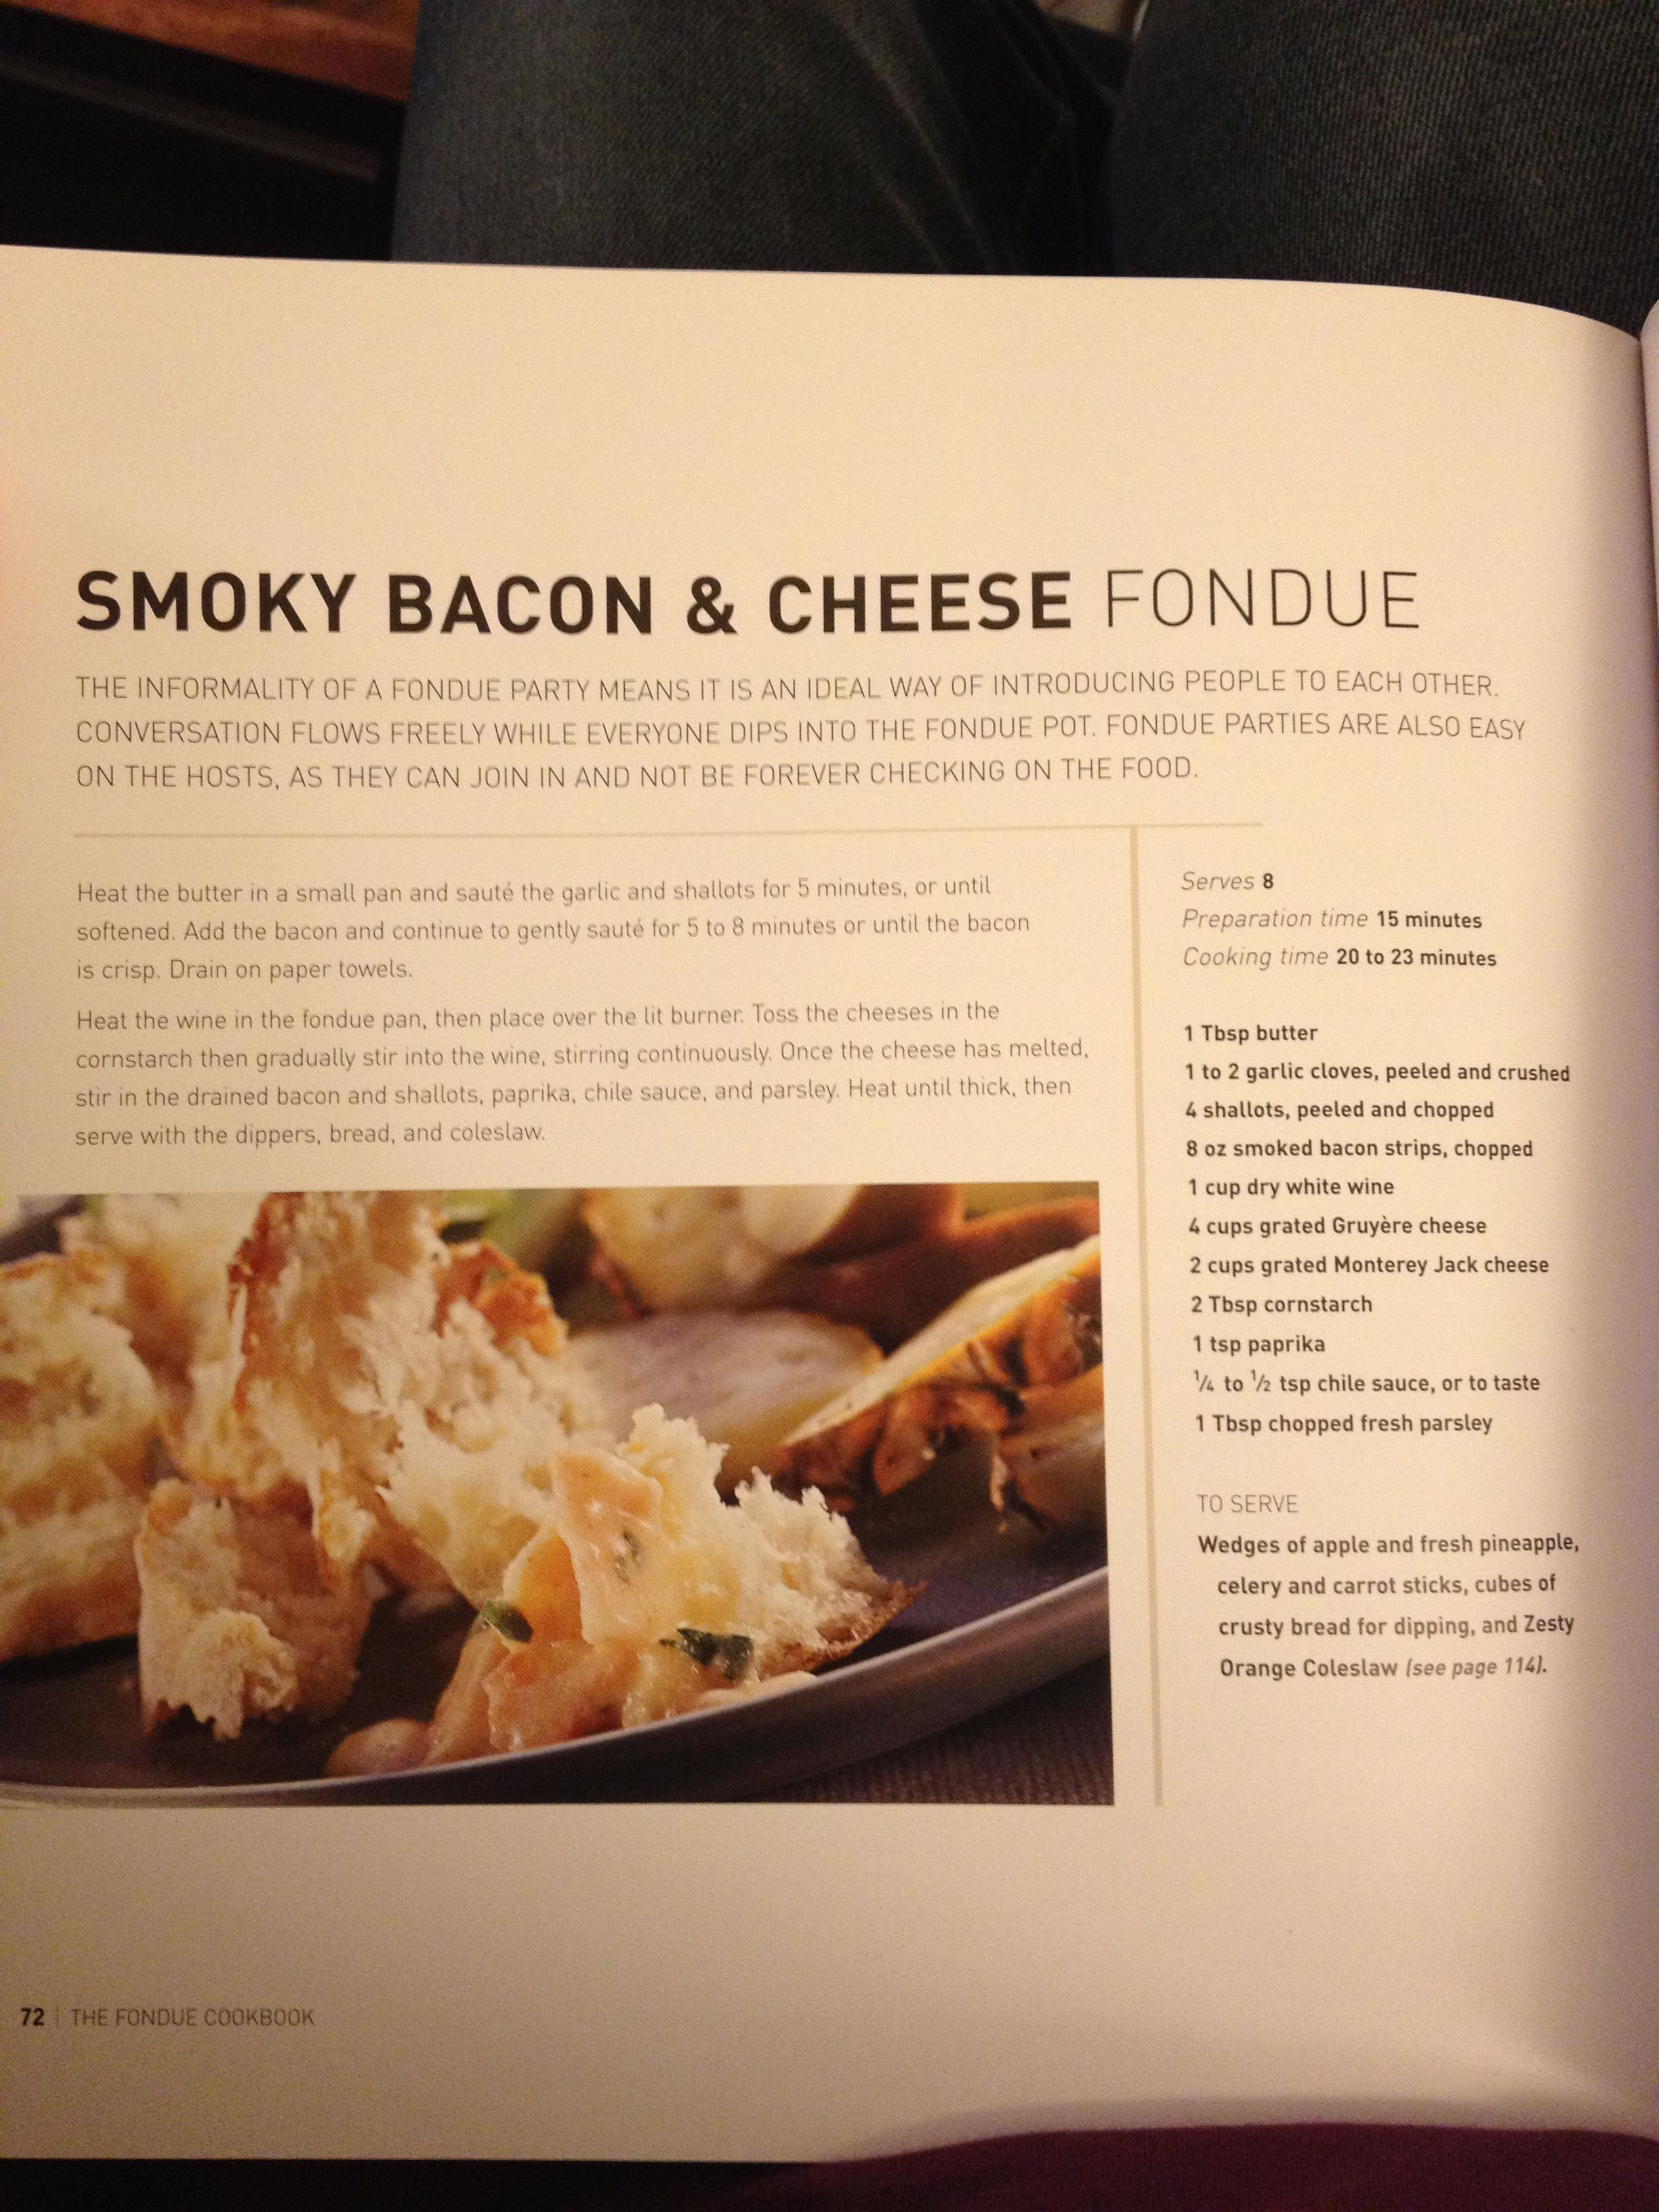 Smokey bacon and cheese fondue